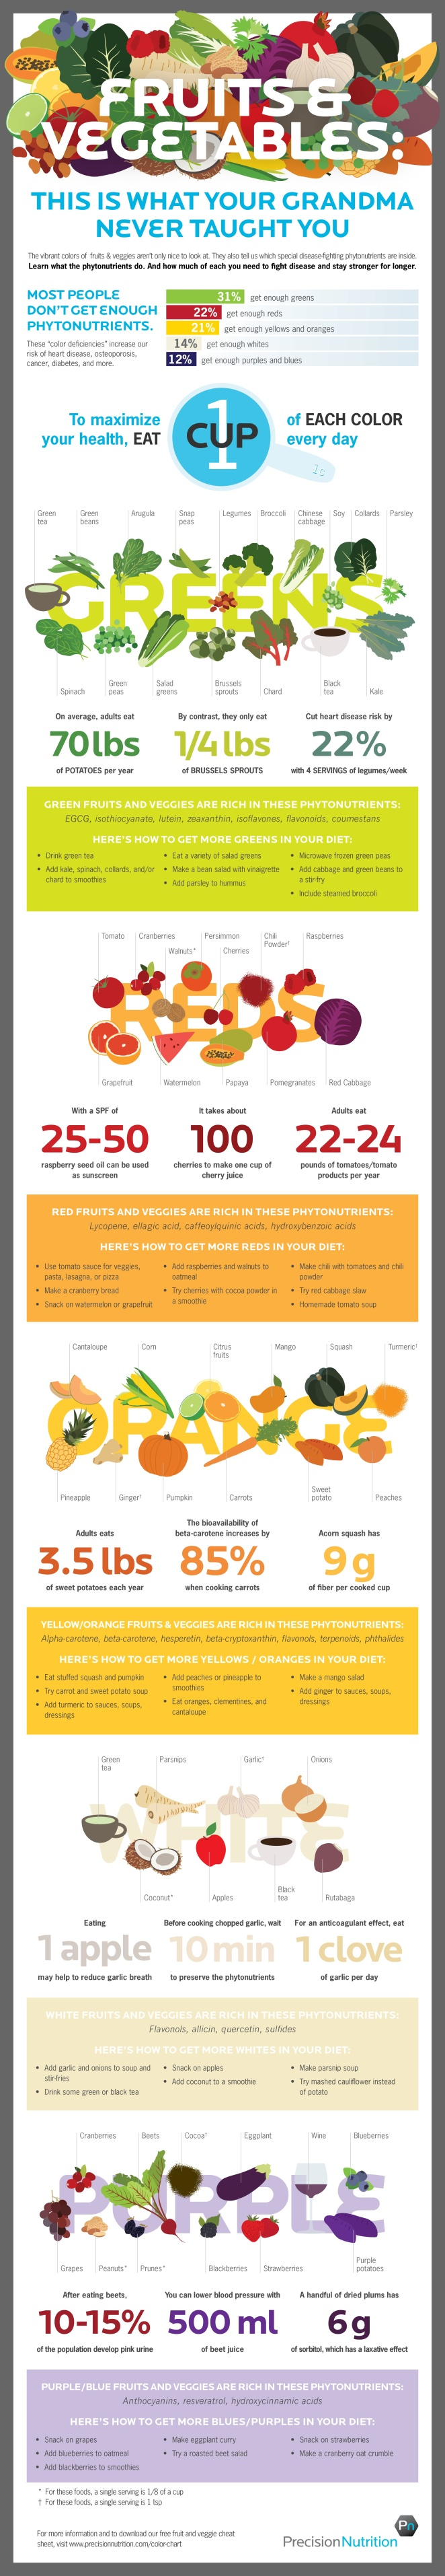 Fruit and Vegetable Infographic